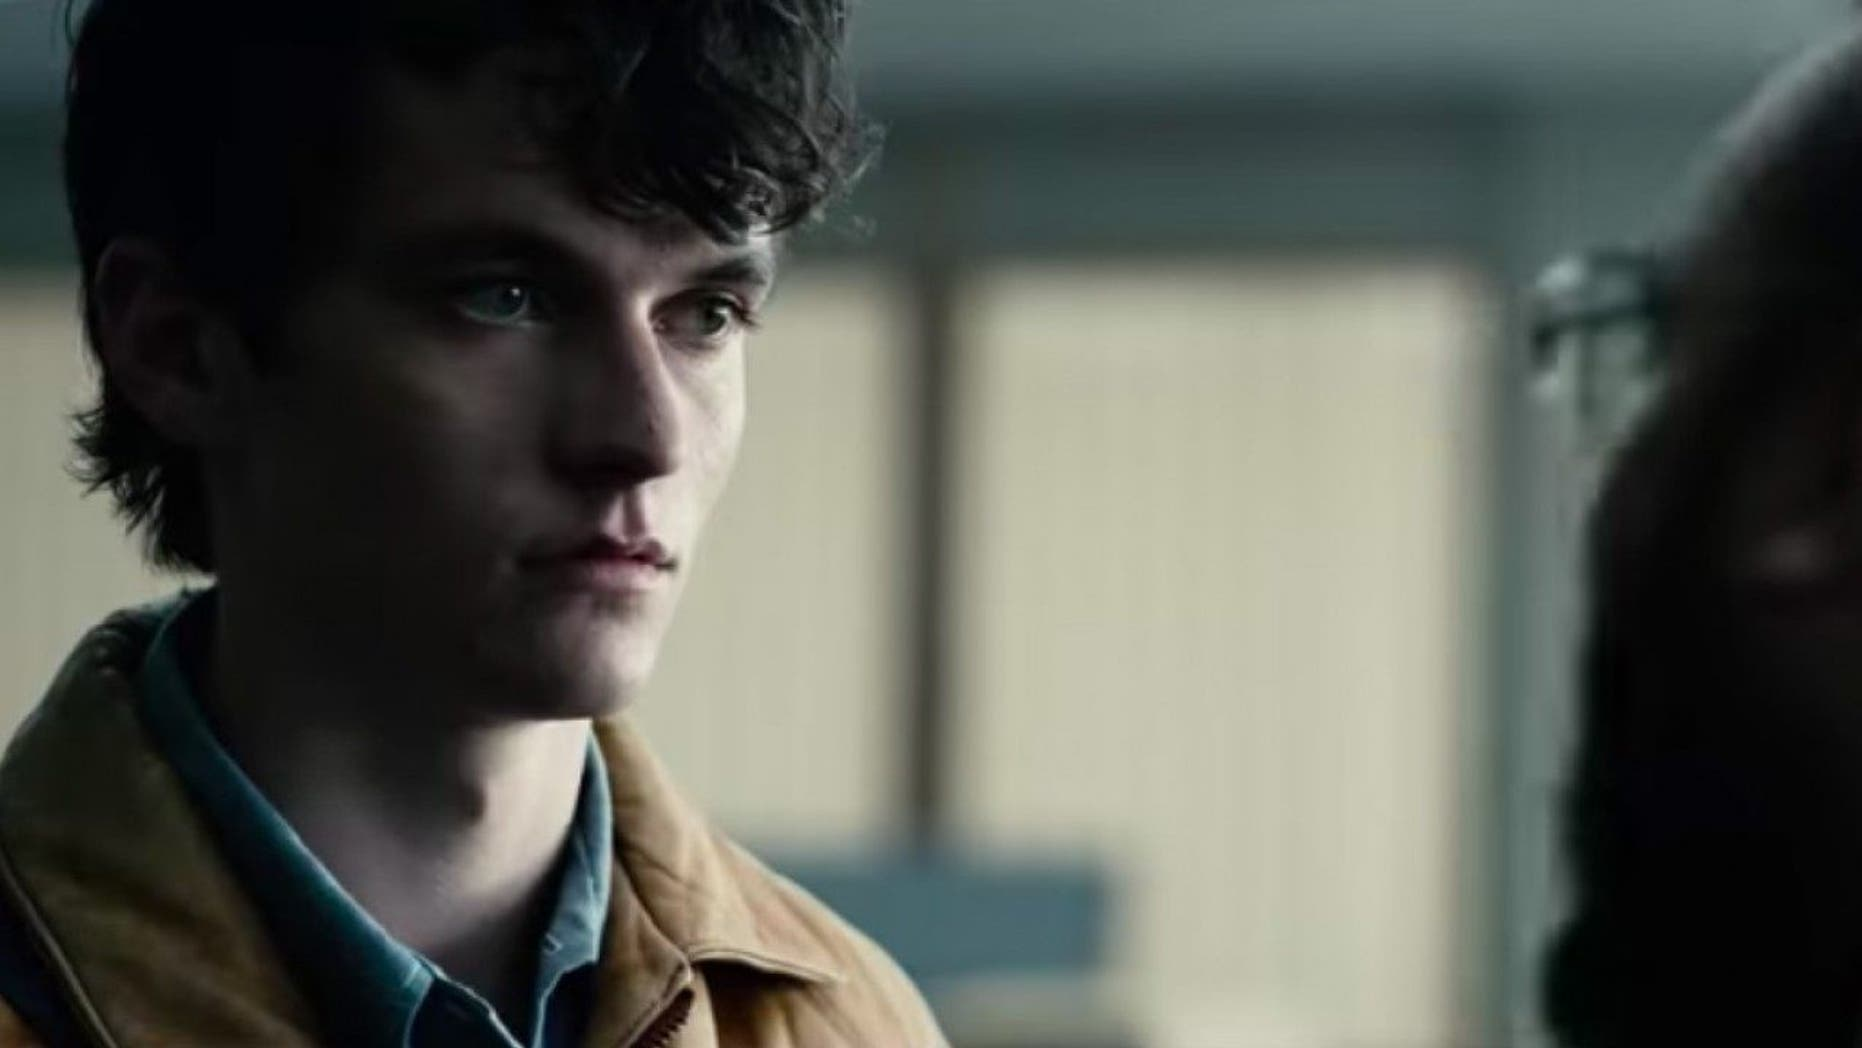 Black Mirror: Bandersnatch Cast, Director, Synopsis Leaked